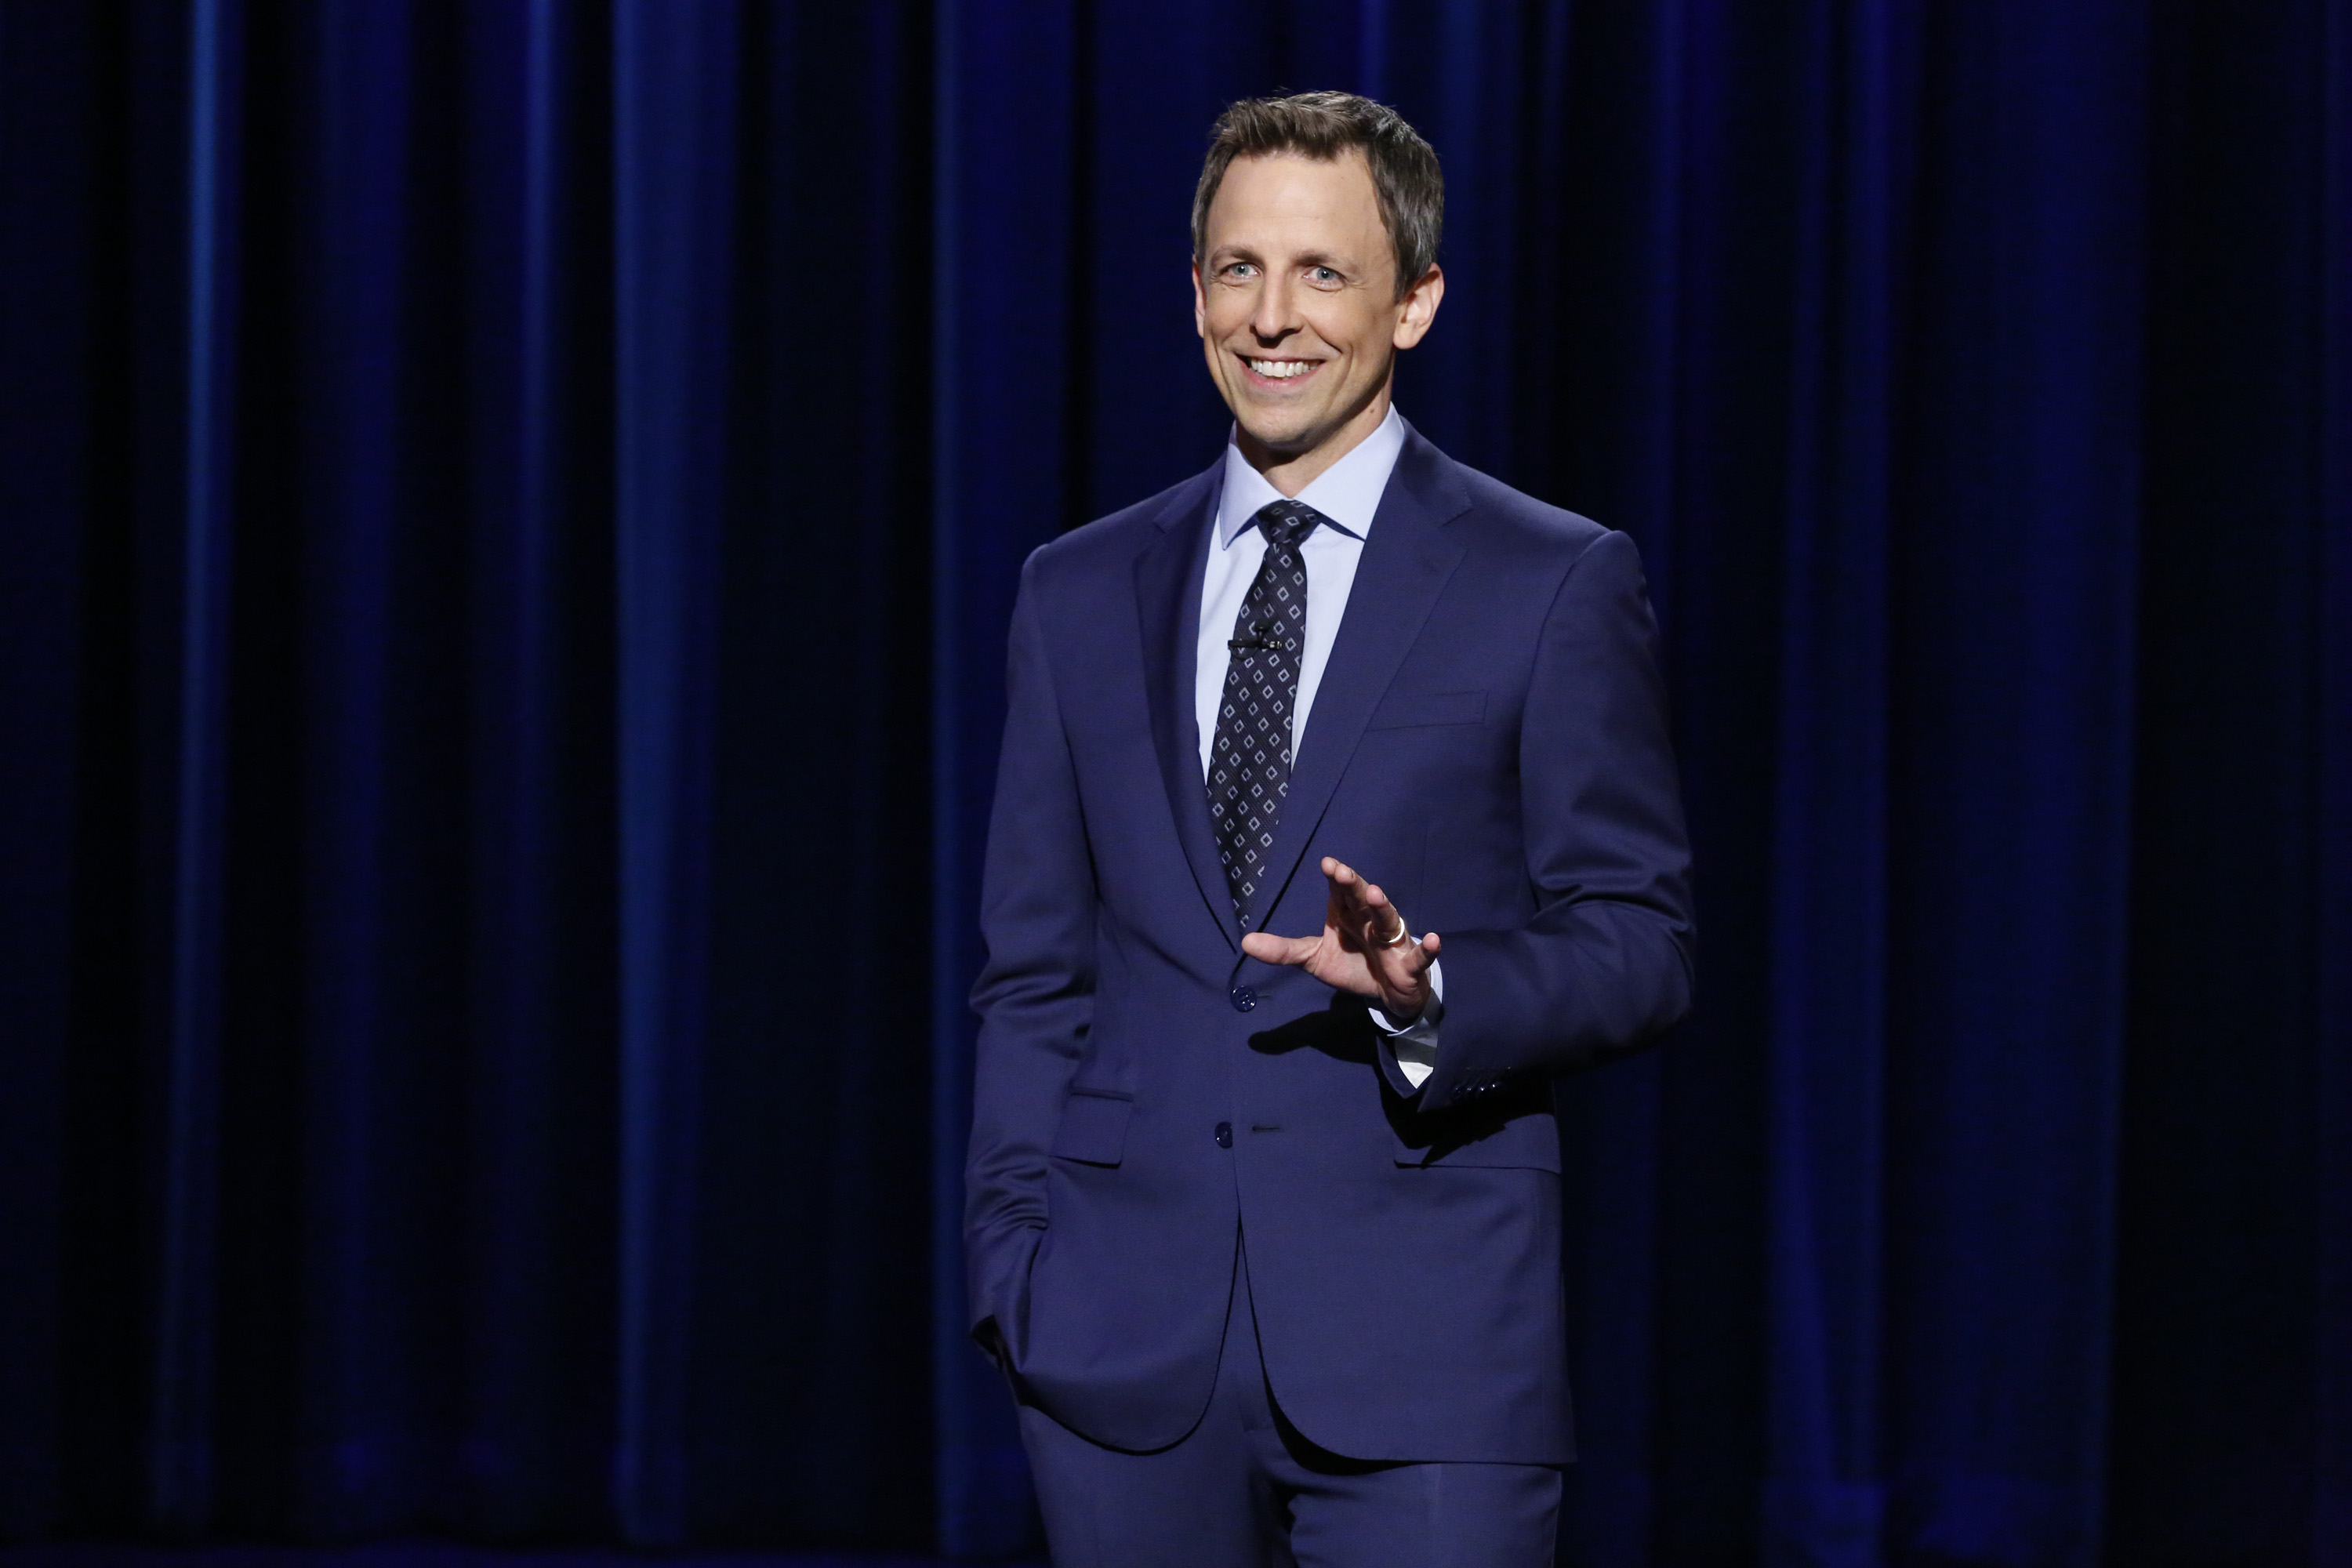 Host Seth Meyers during the Late Night monologue on April 24, 2014.